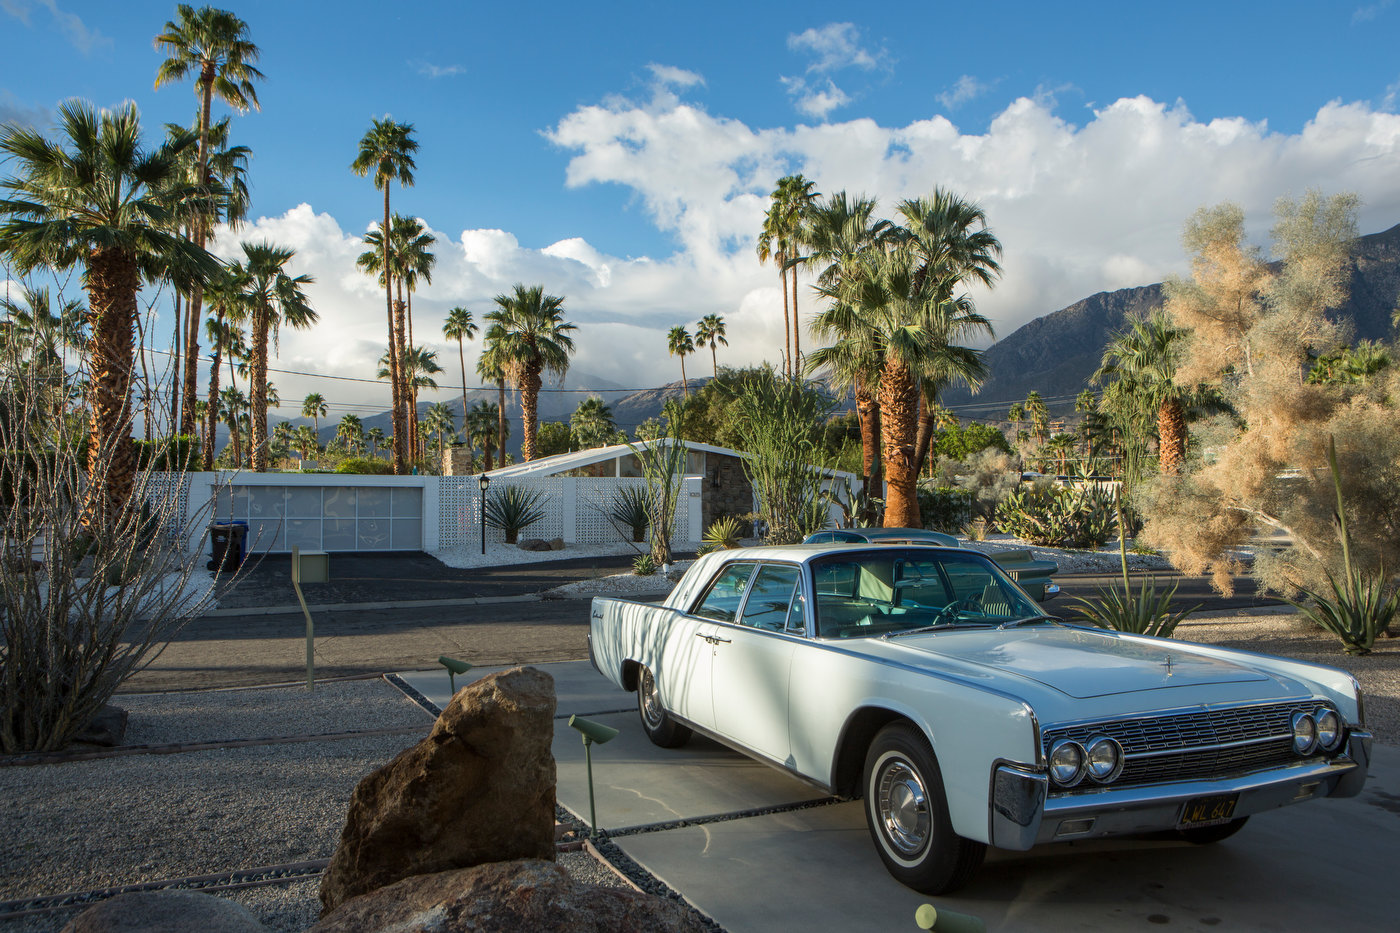 Mid-Century modern, Vista Las Palmas, Palm Springs (for IDEAT).